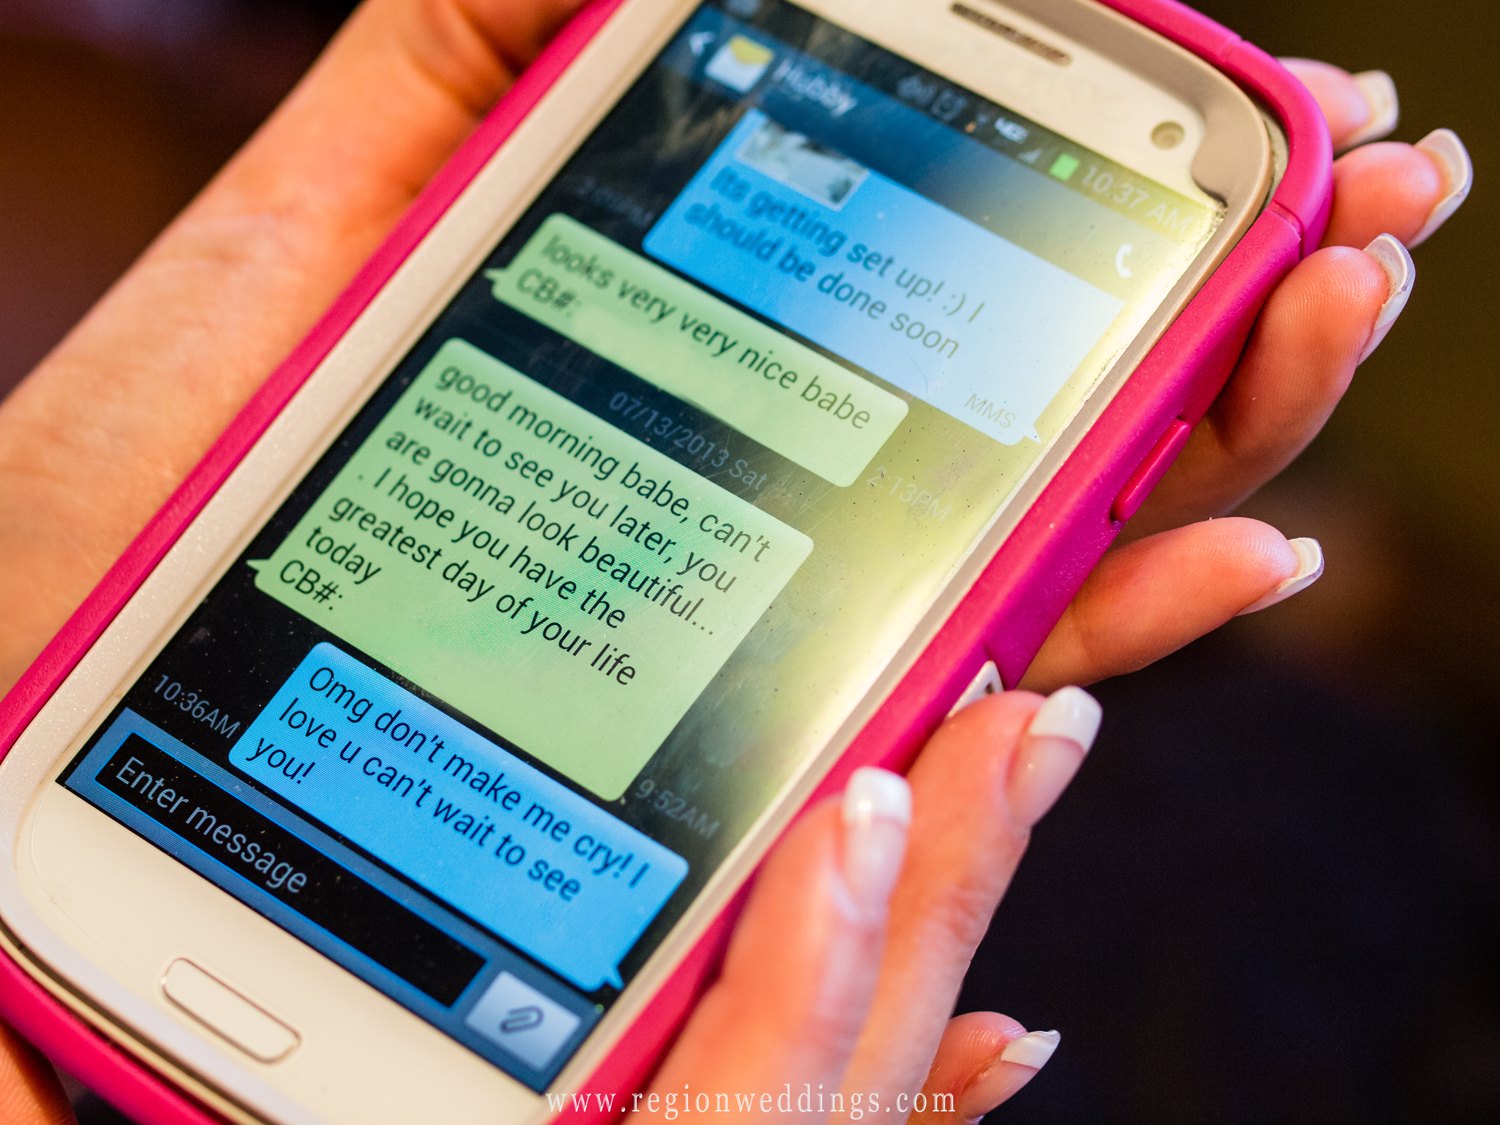 The bride and groom exchange text messages of love on their smartphones on the morning of their wedding.